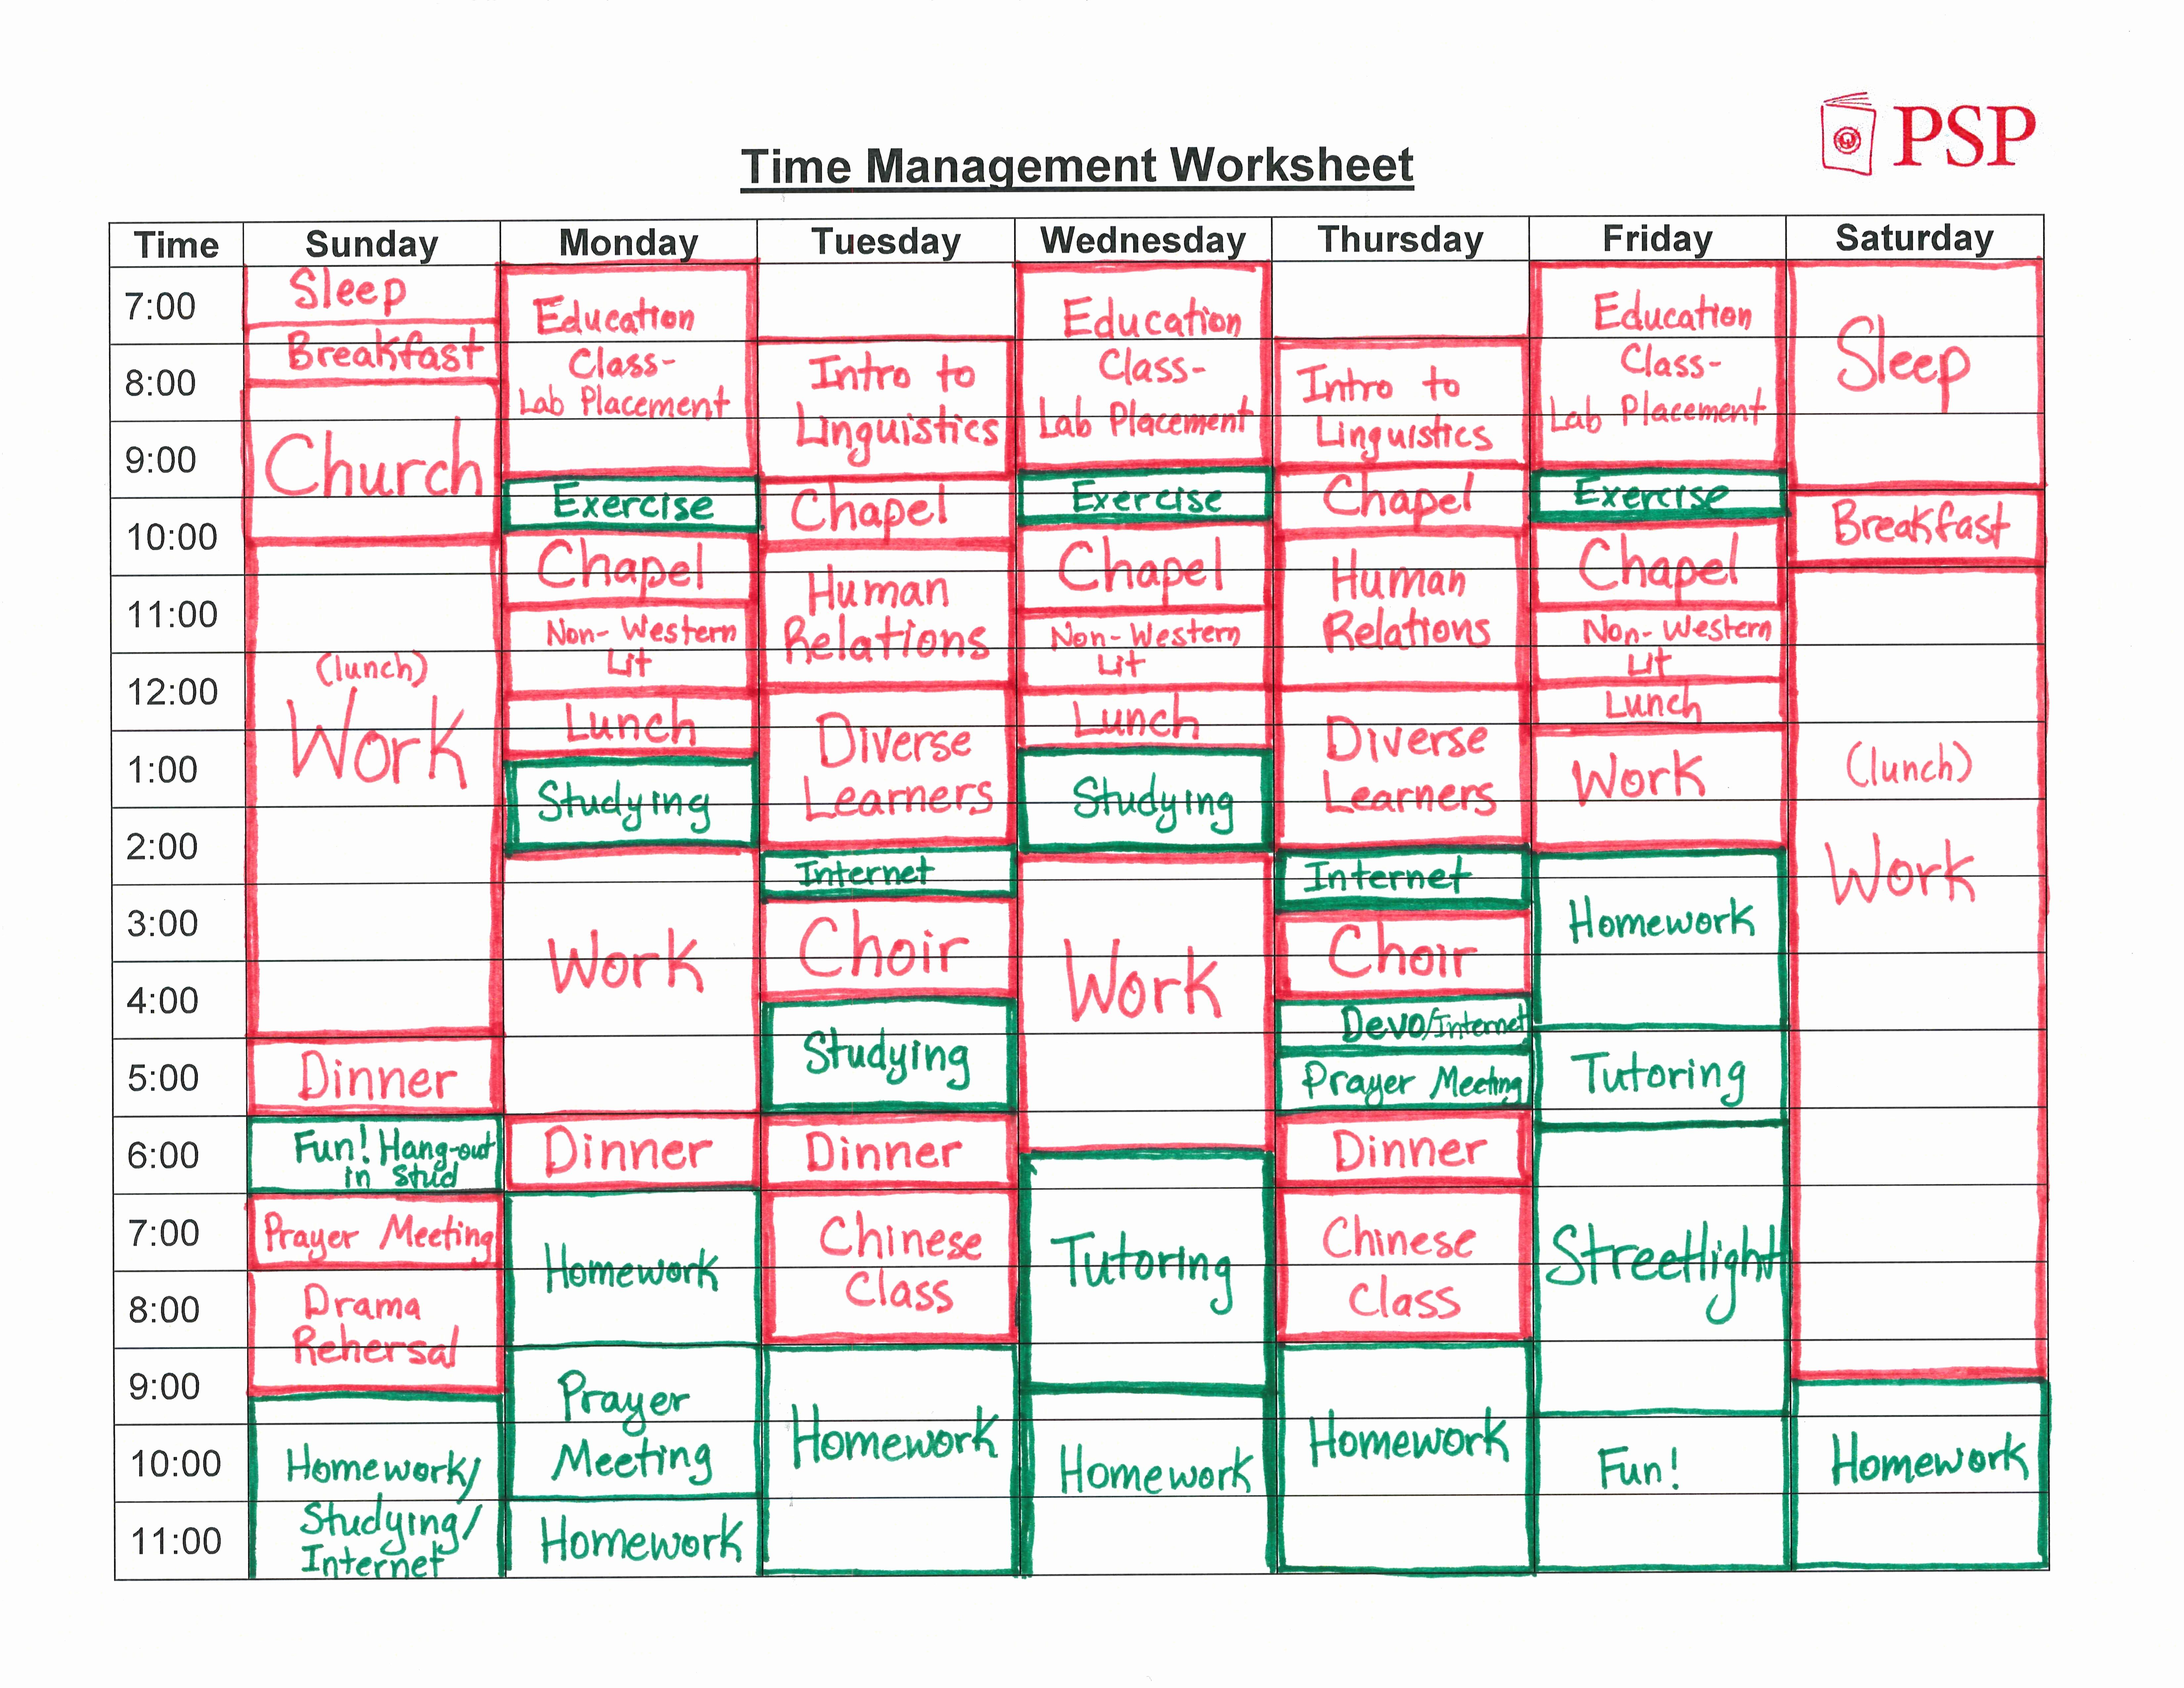 Time Management Schedule Template Awesome Time Management